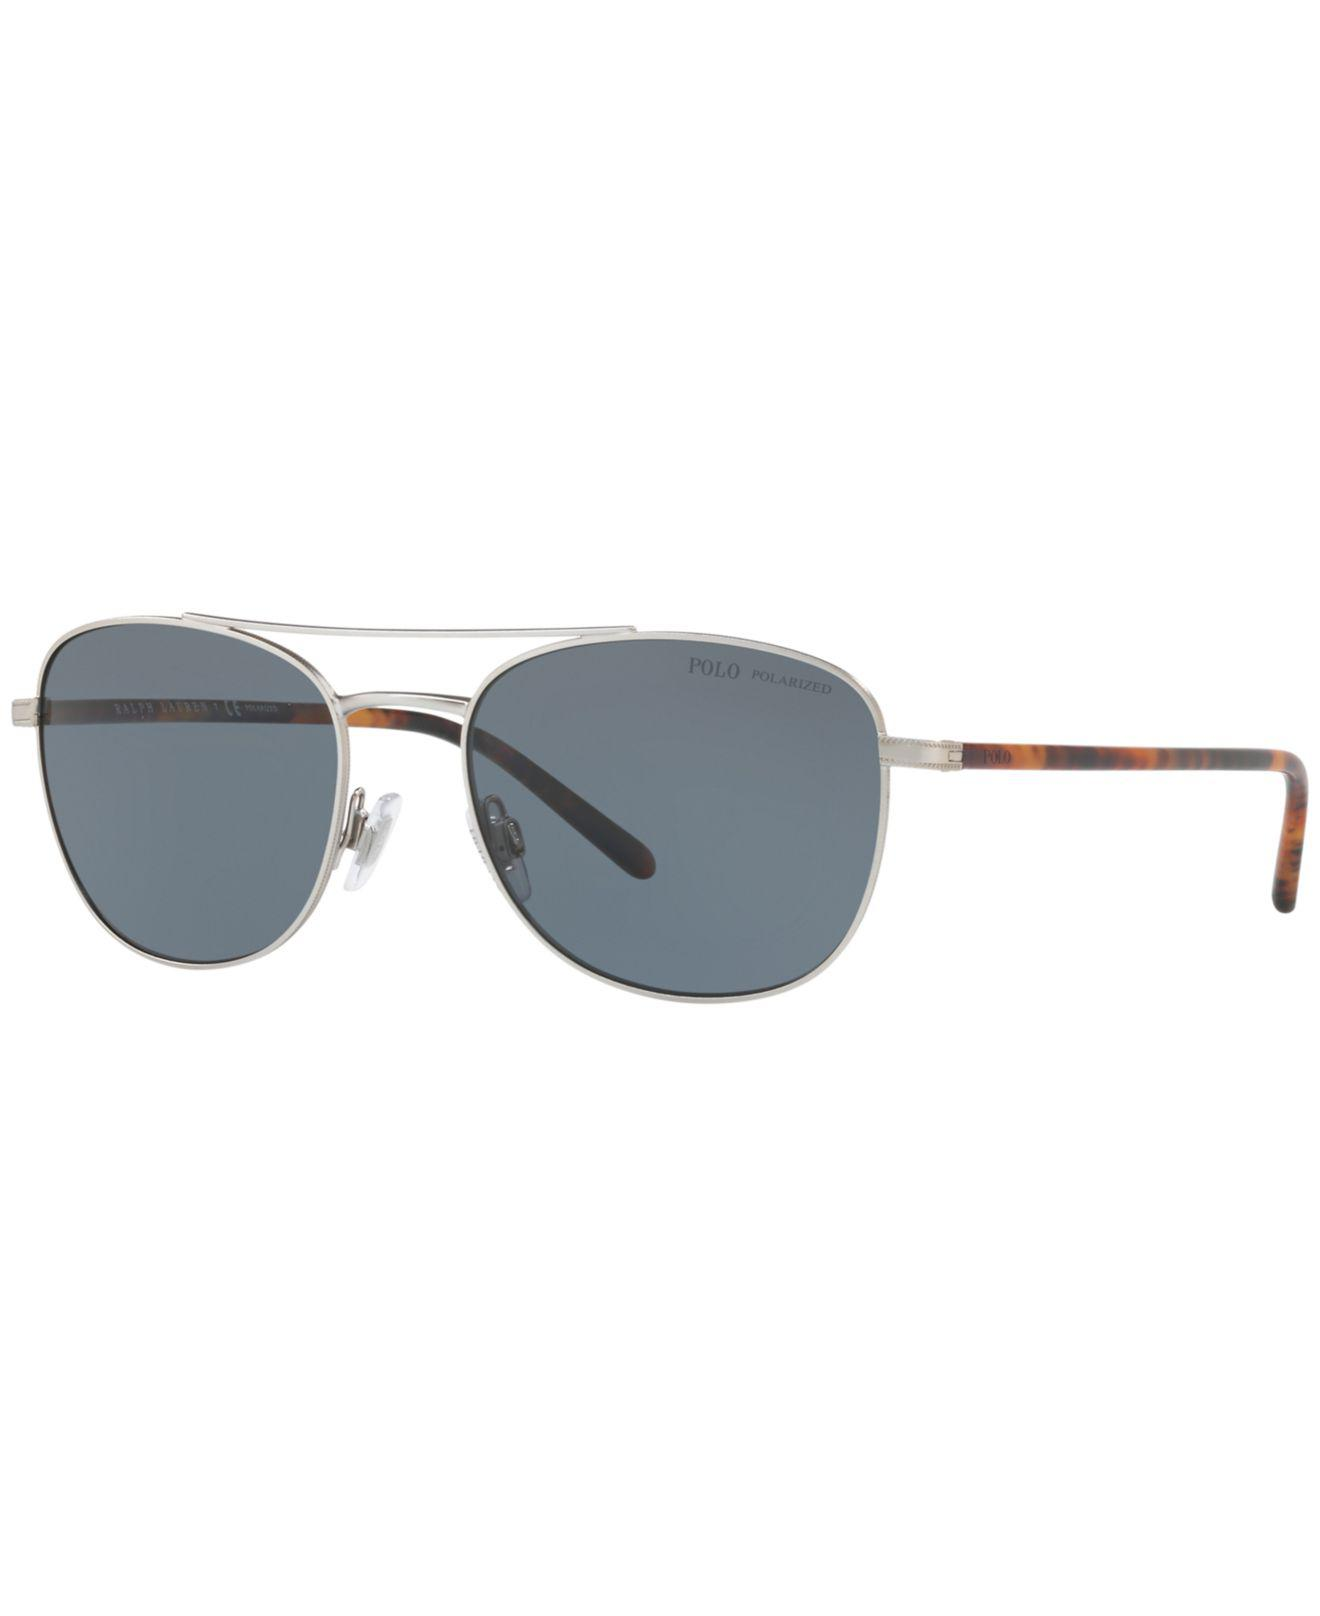 bc79068dde8b Polo Ralph Lauren. Men s Gray Polarized Sunglasses ...